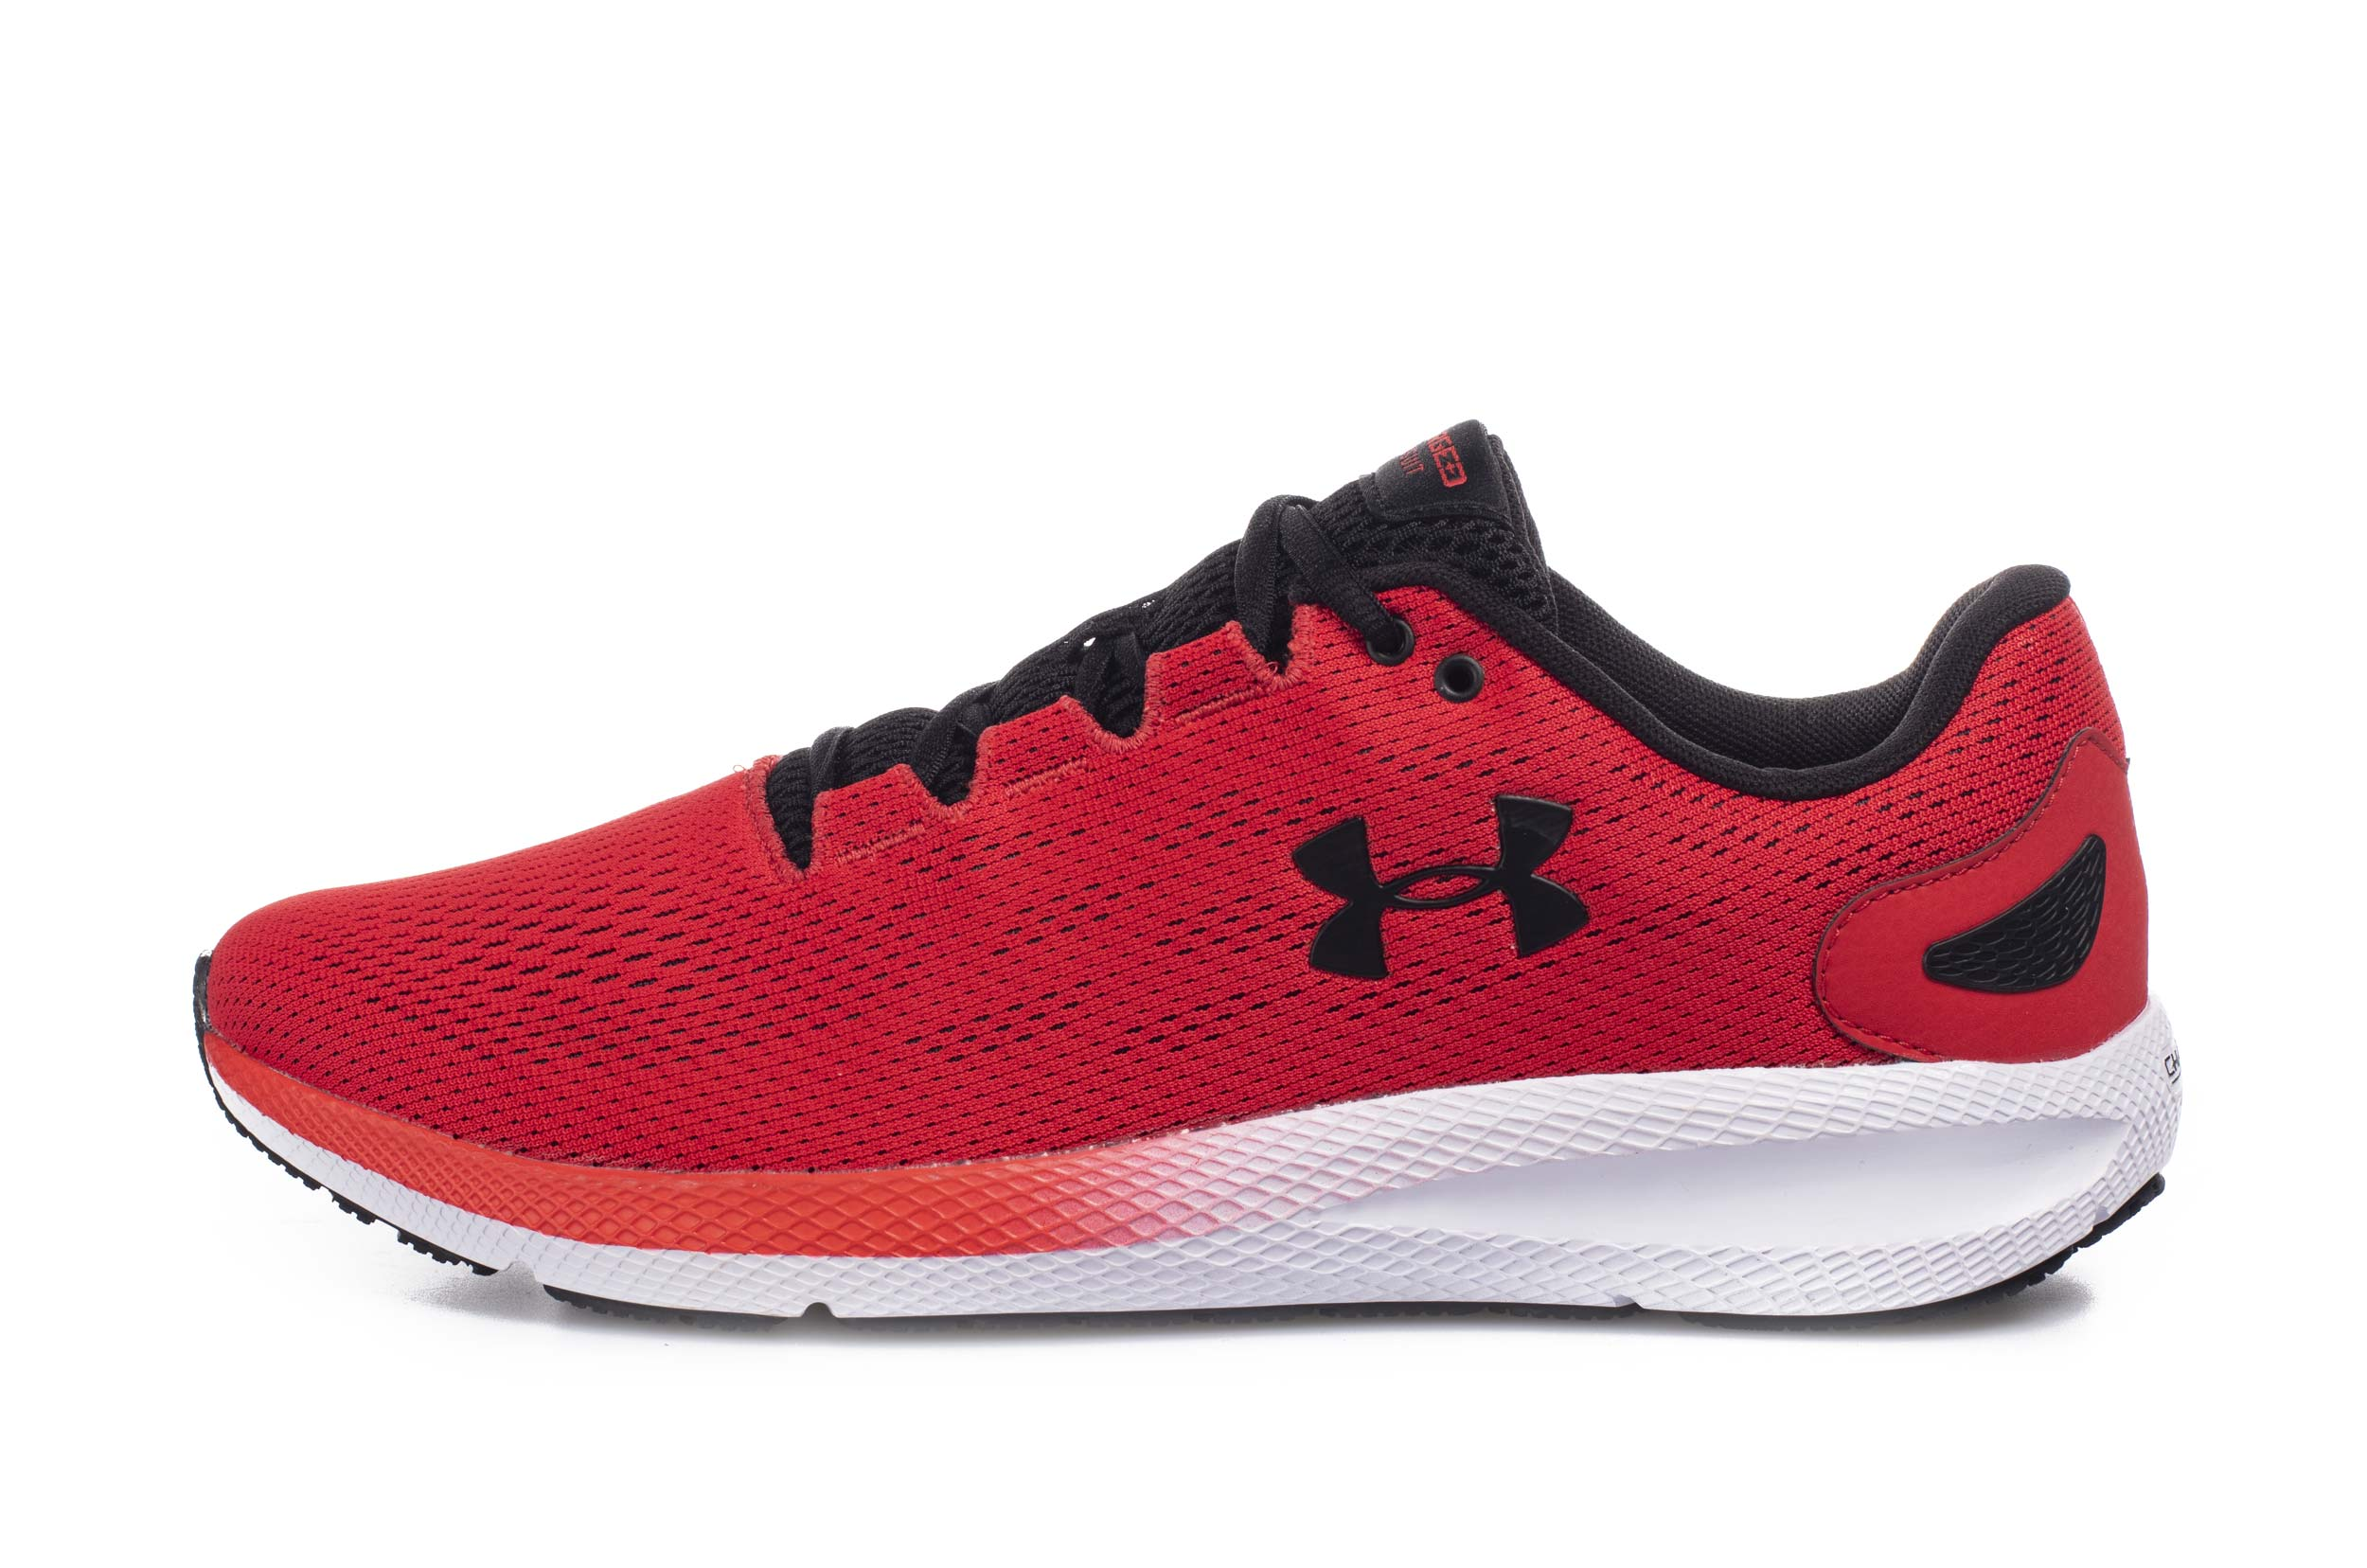 UNDER ARMOUR CHARGED PURSUIT 2 3022594-601 Κόκκινο